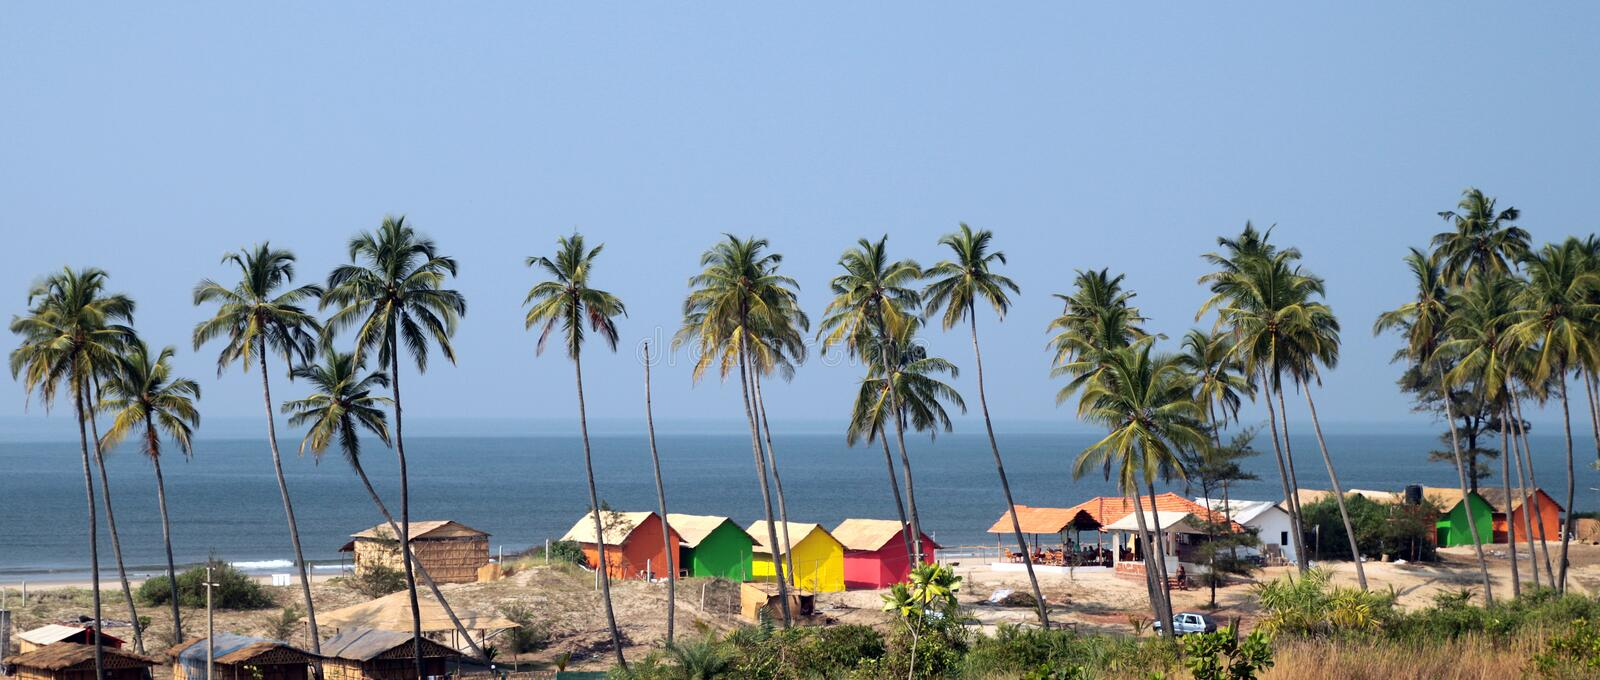 Download Goa beach stock photo. Image of trees, huts, lagoon, india - 12469754